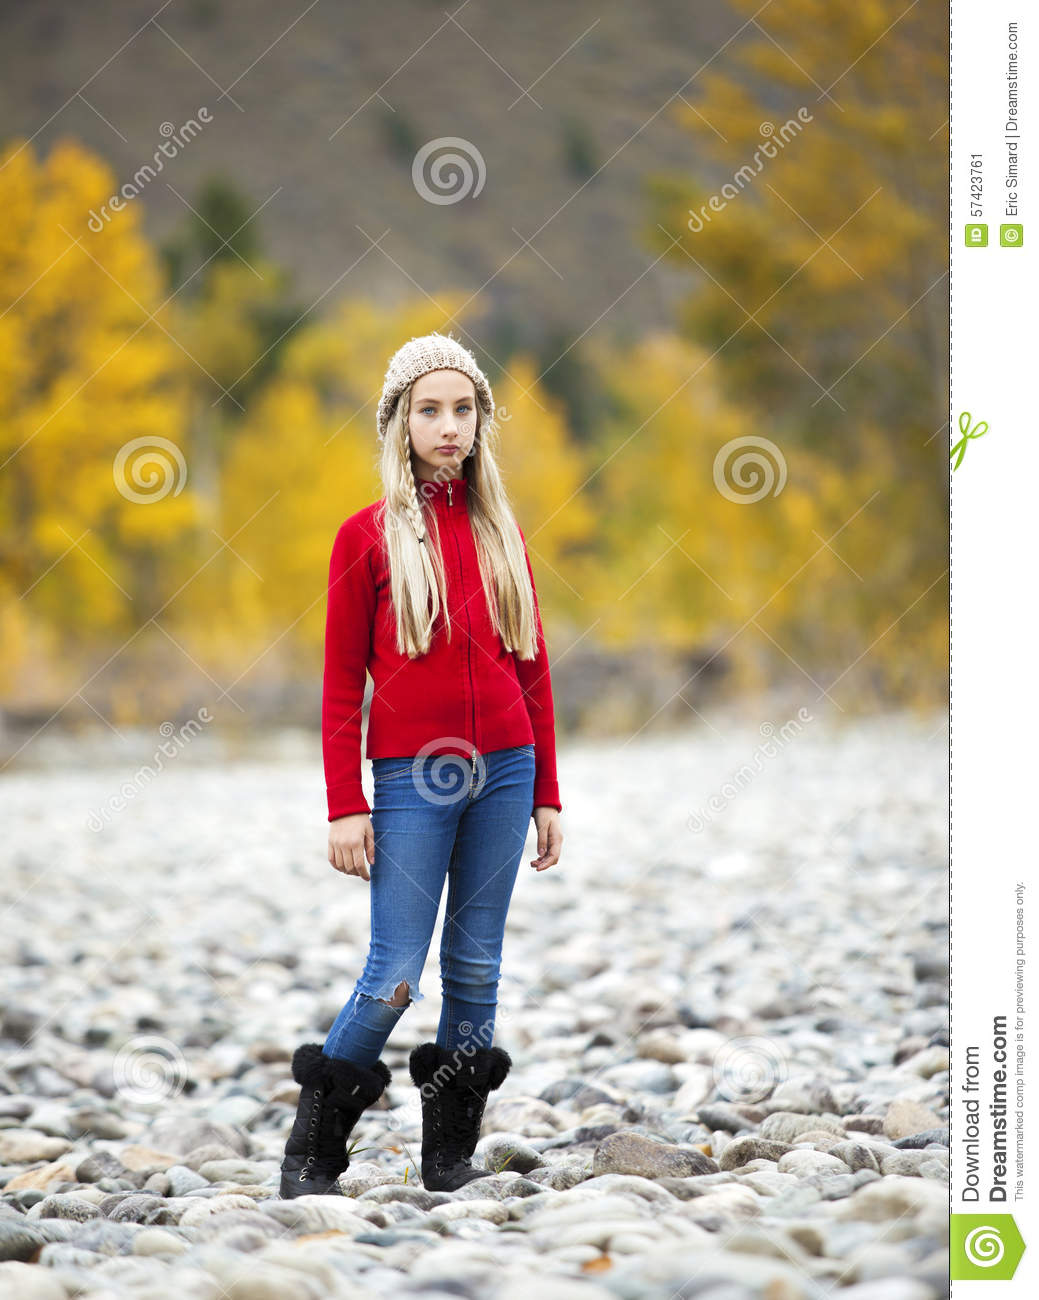 Pre-Teen Girl Alone Outdoors Stock Photo - Image 57423761-7984